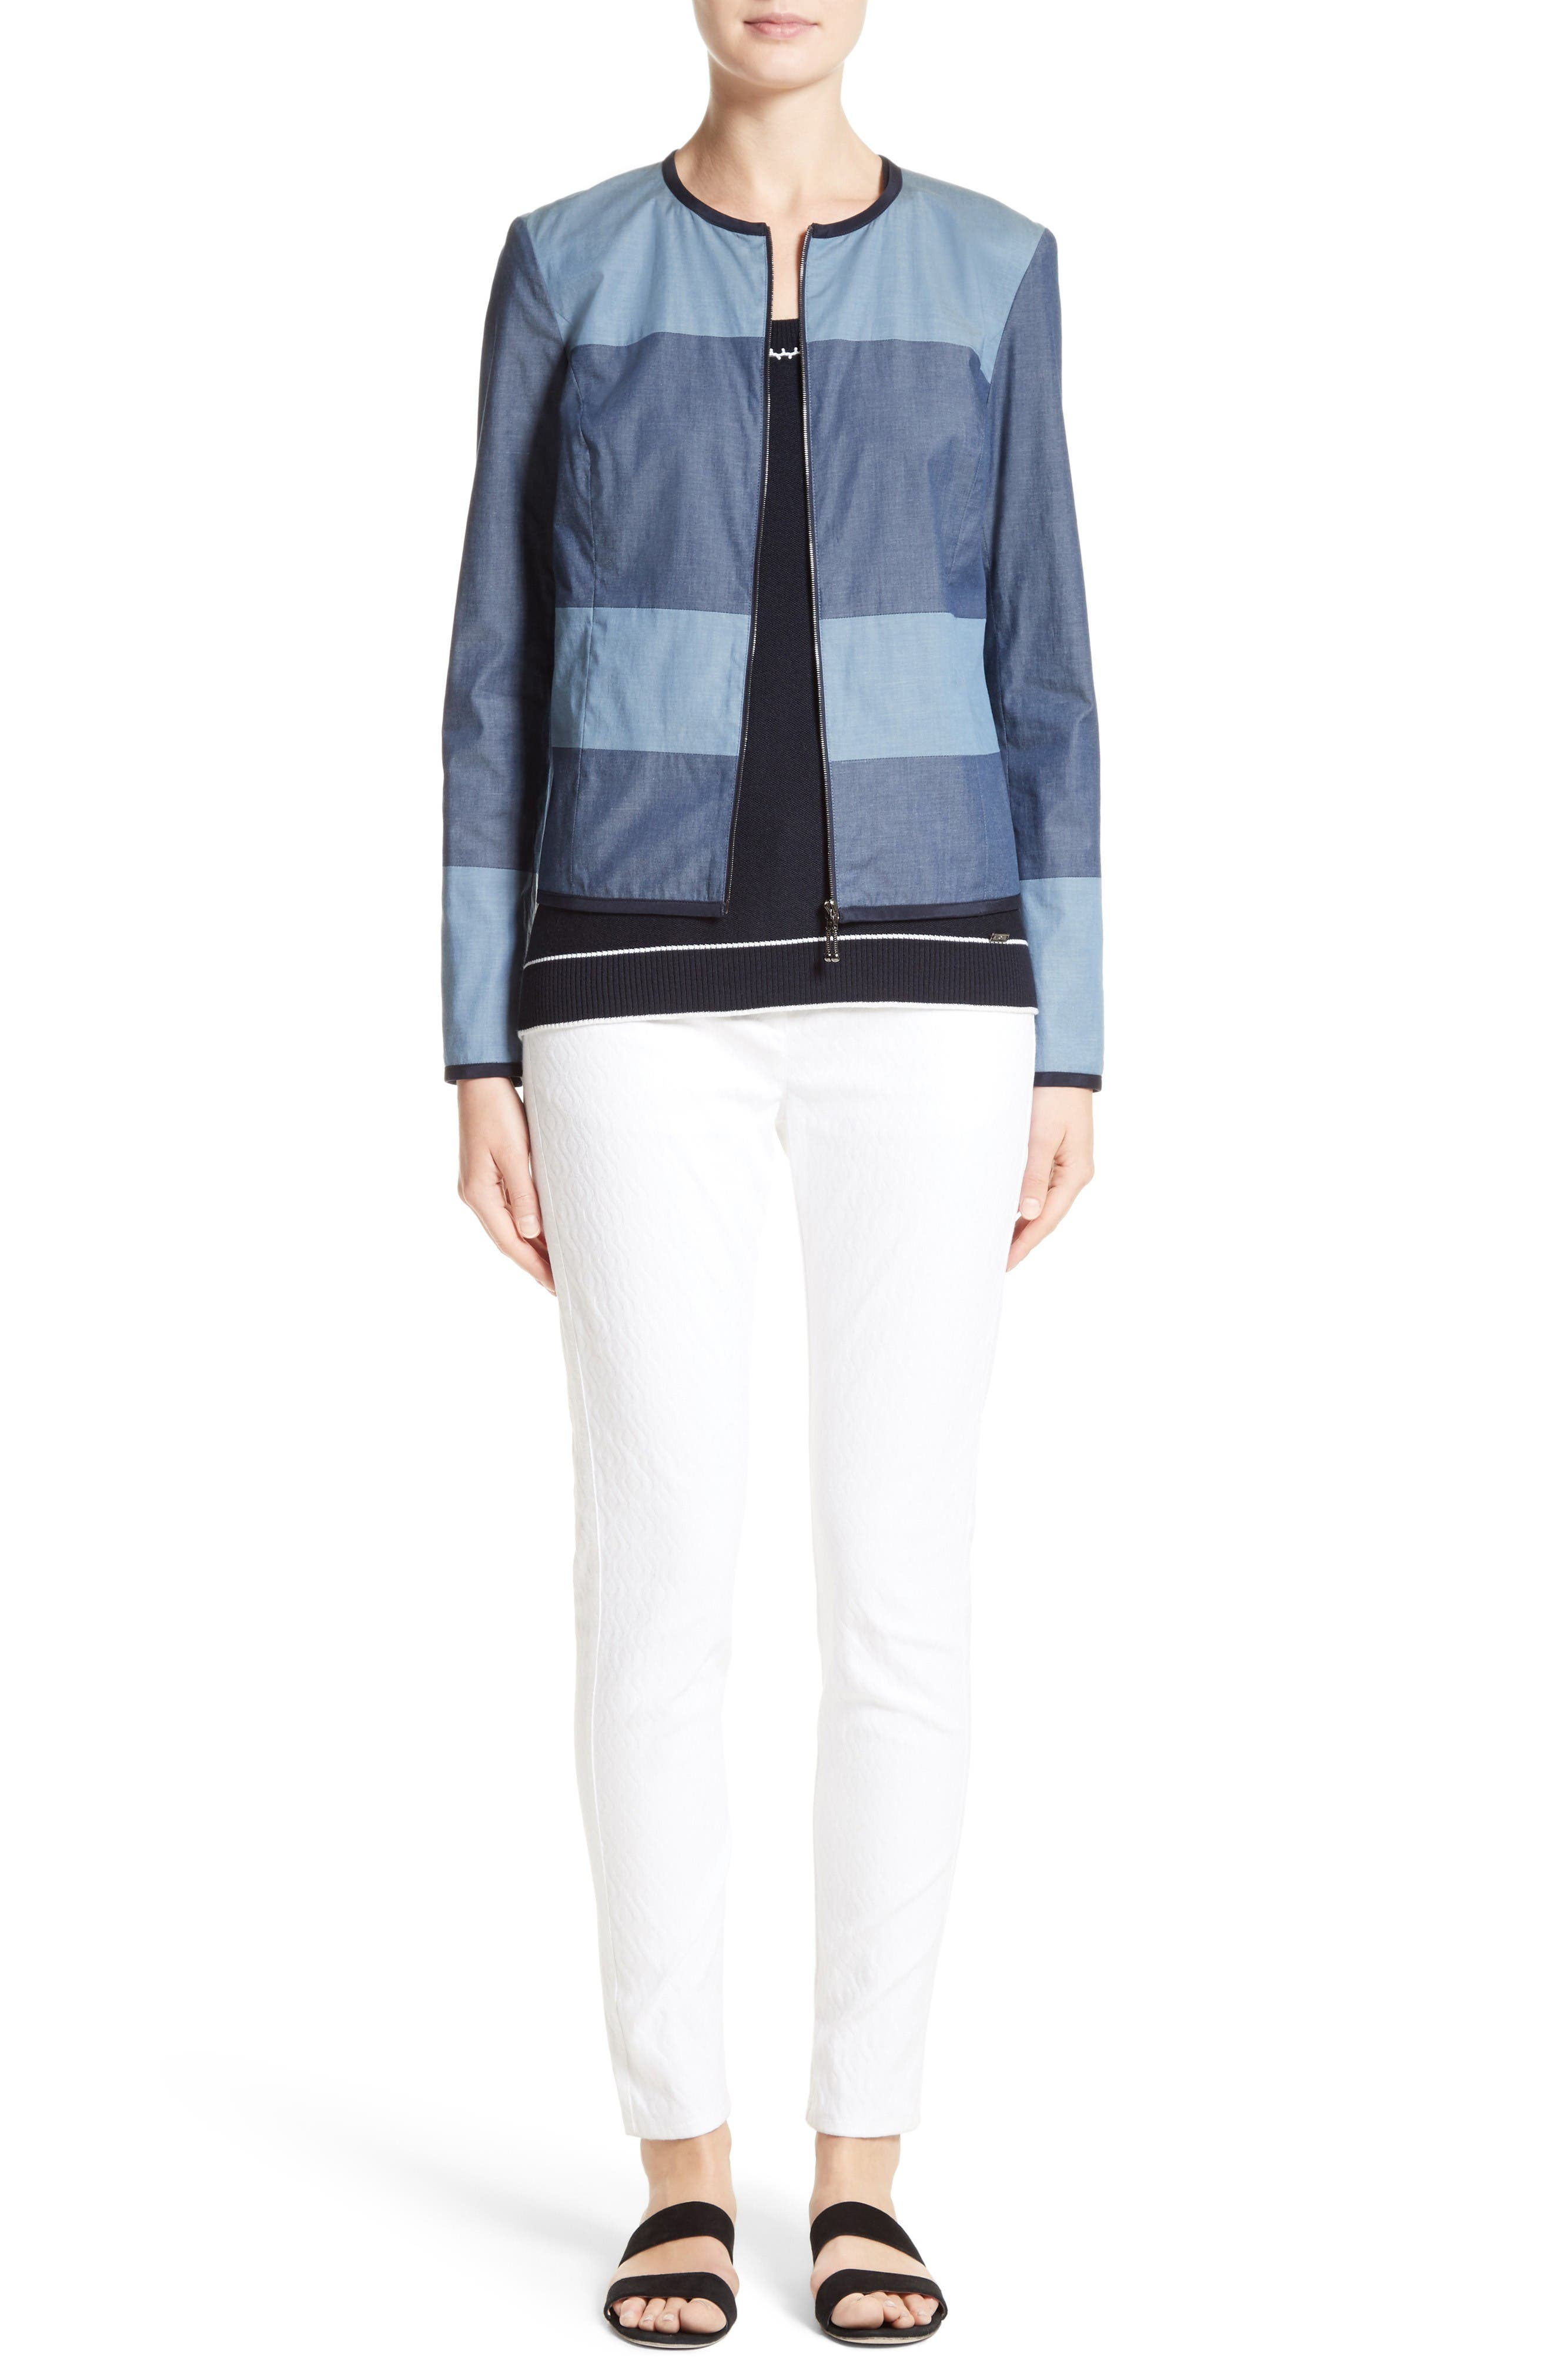 St. John Collection Jacket, Shell & Jeans Outfit with Accessories